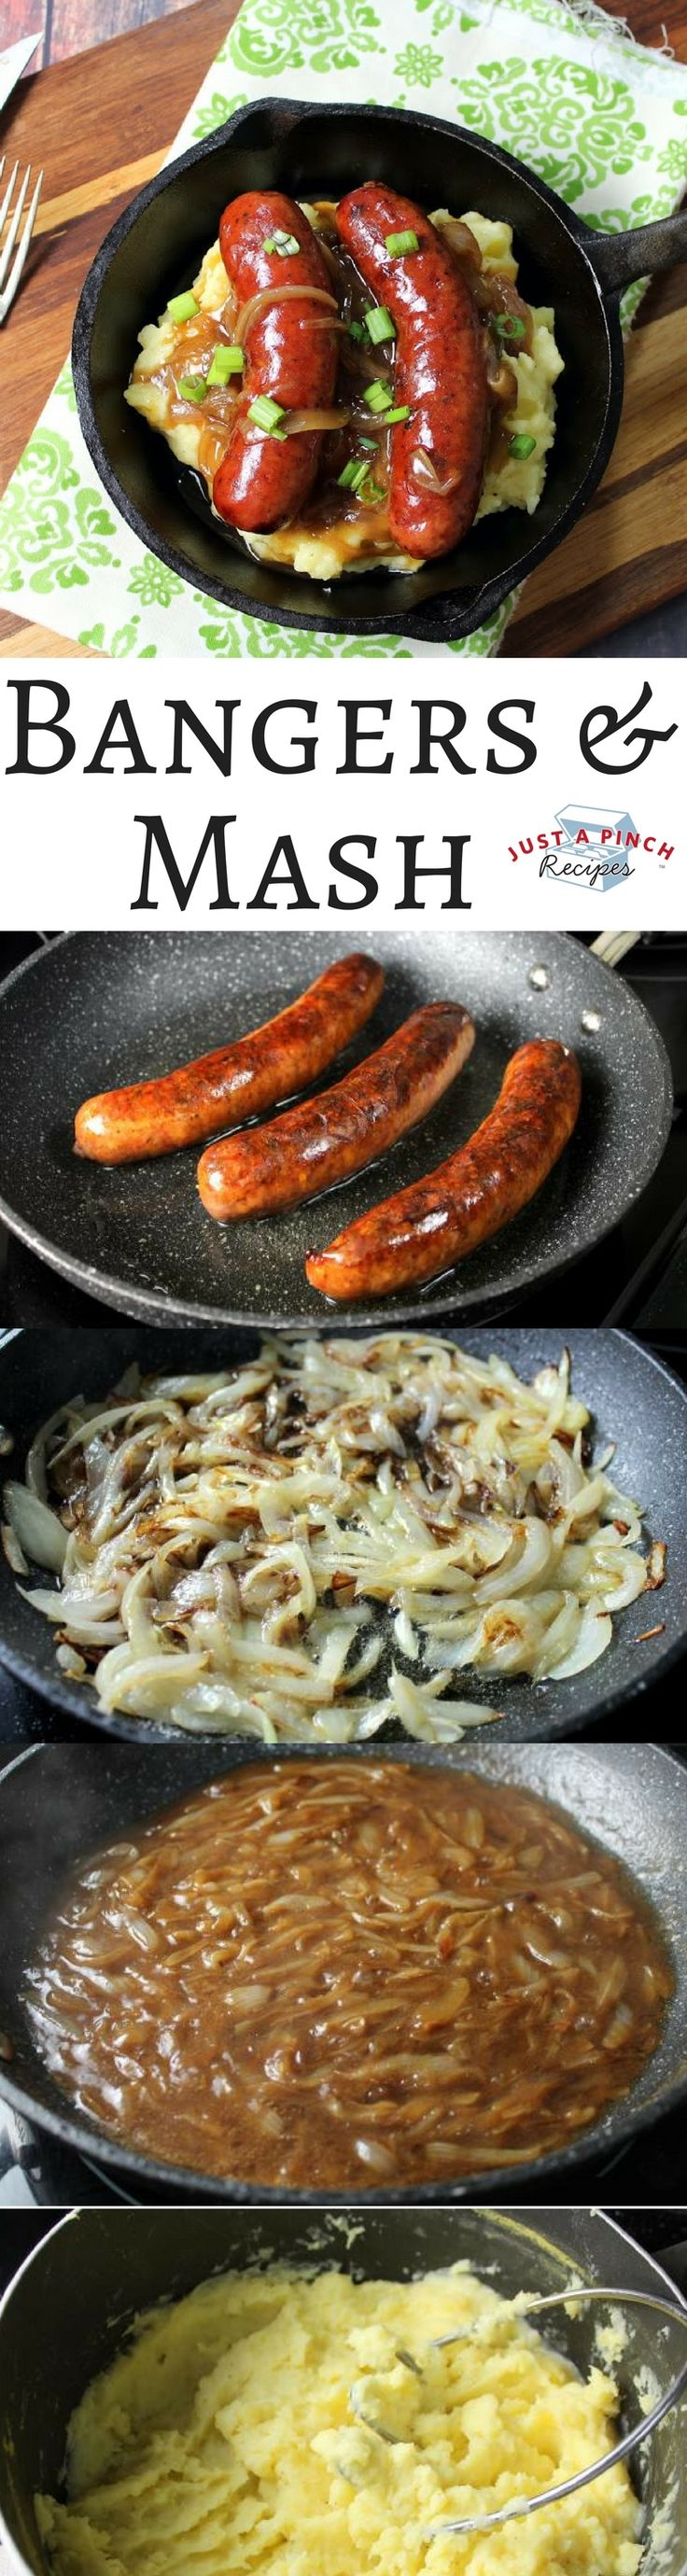 This homemade authentic bangers and mash is easy to make and ready in just 60 minutes! The sausages are juicy and the potatoes are buttery and creamy. Perfect for St. Patrick's Day!